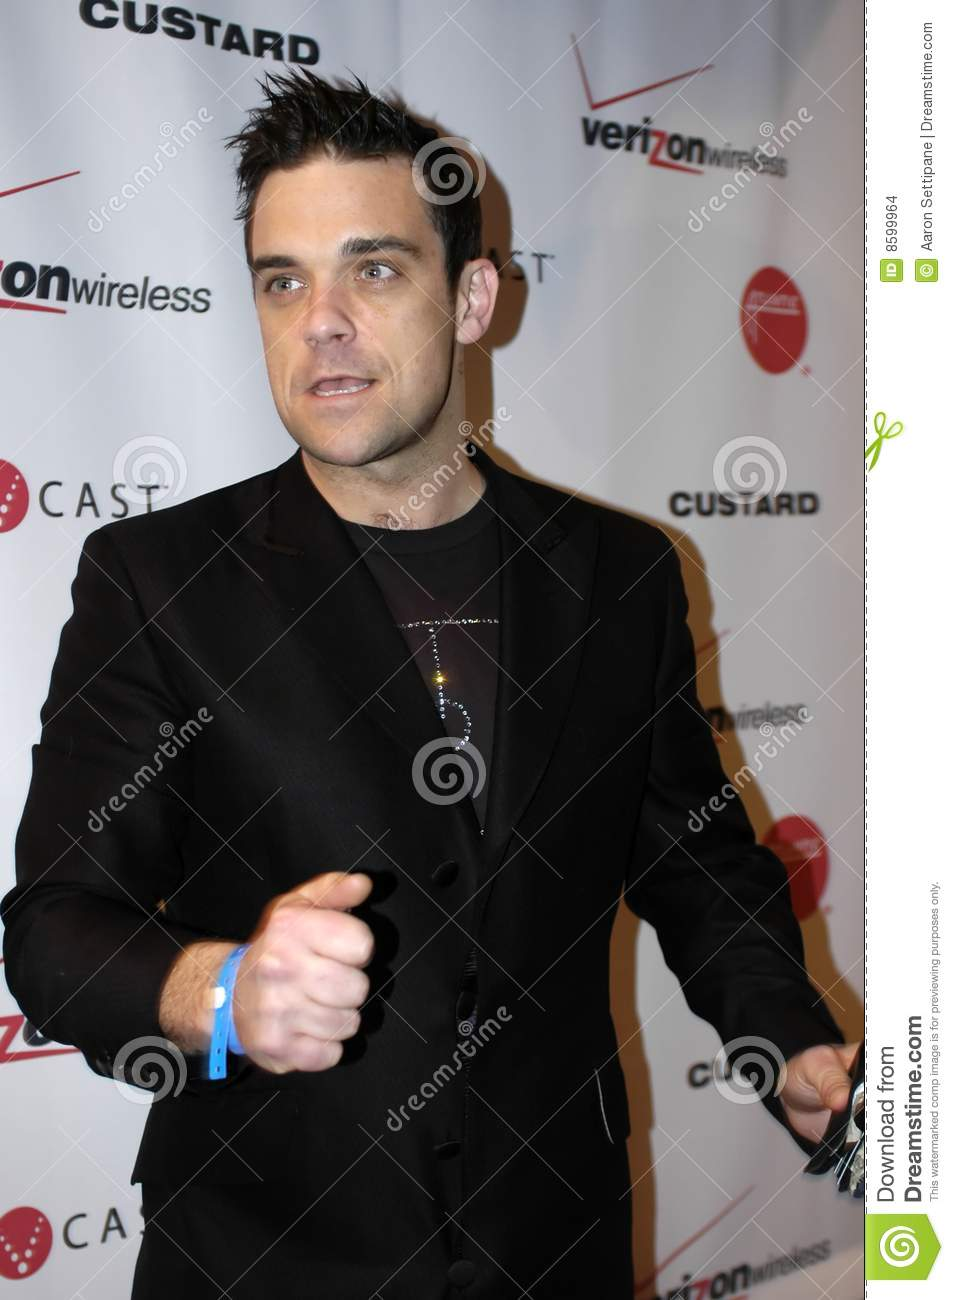 Robbie Williams on the red carpet